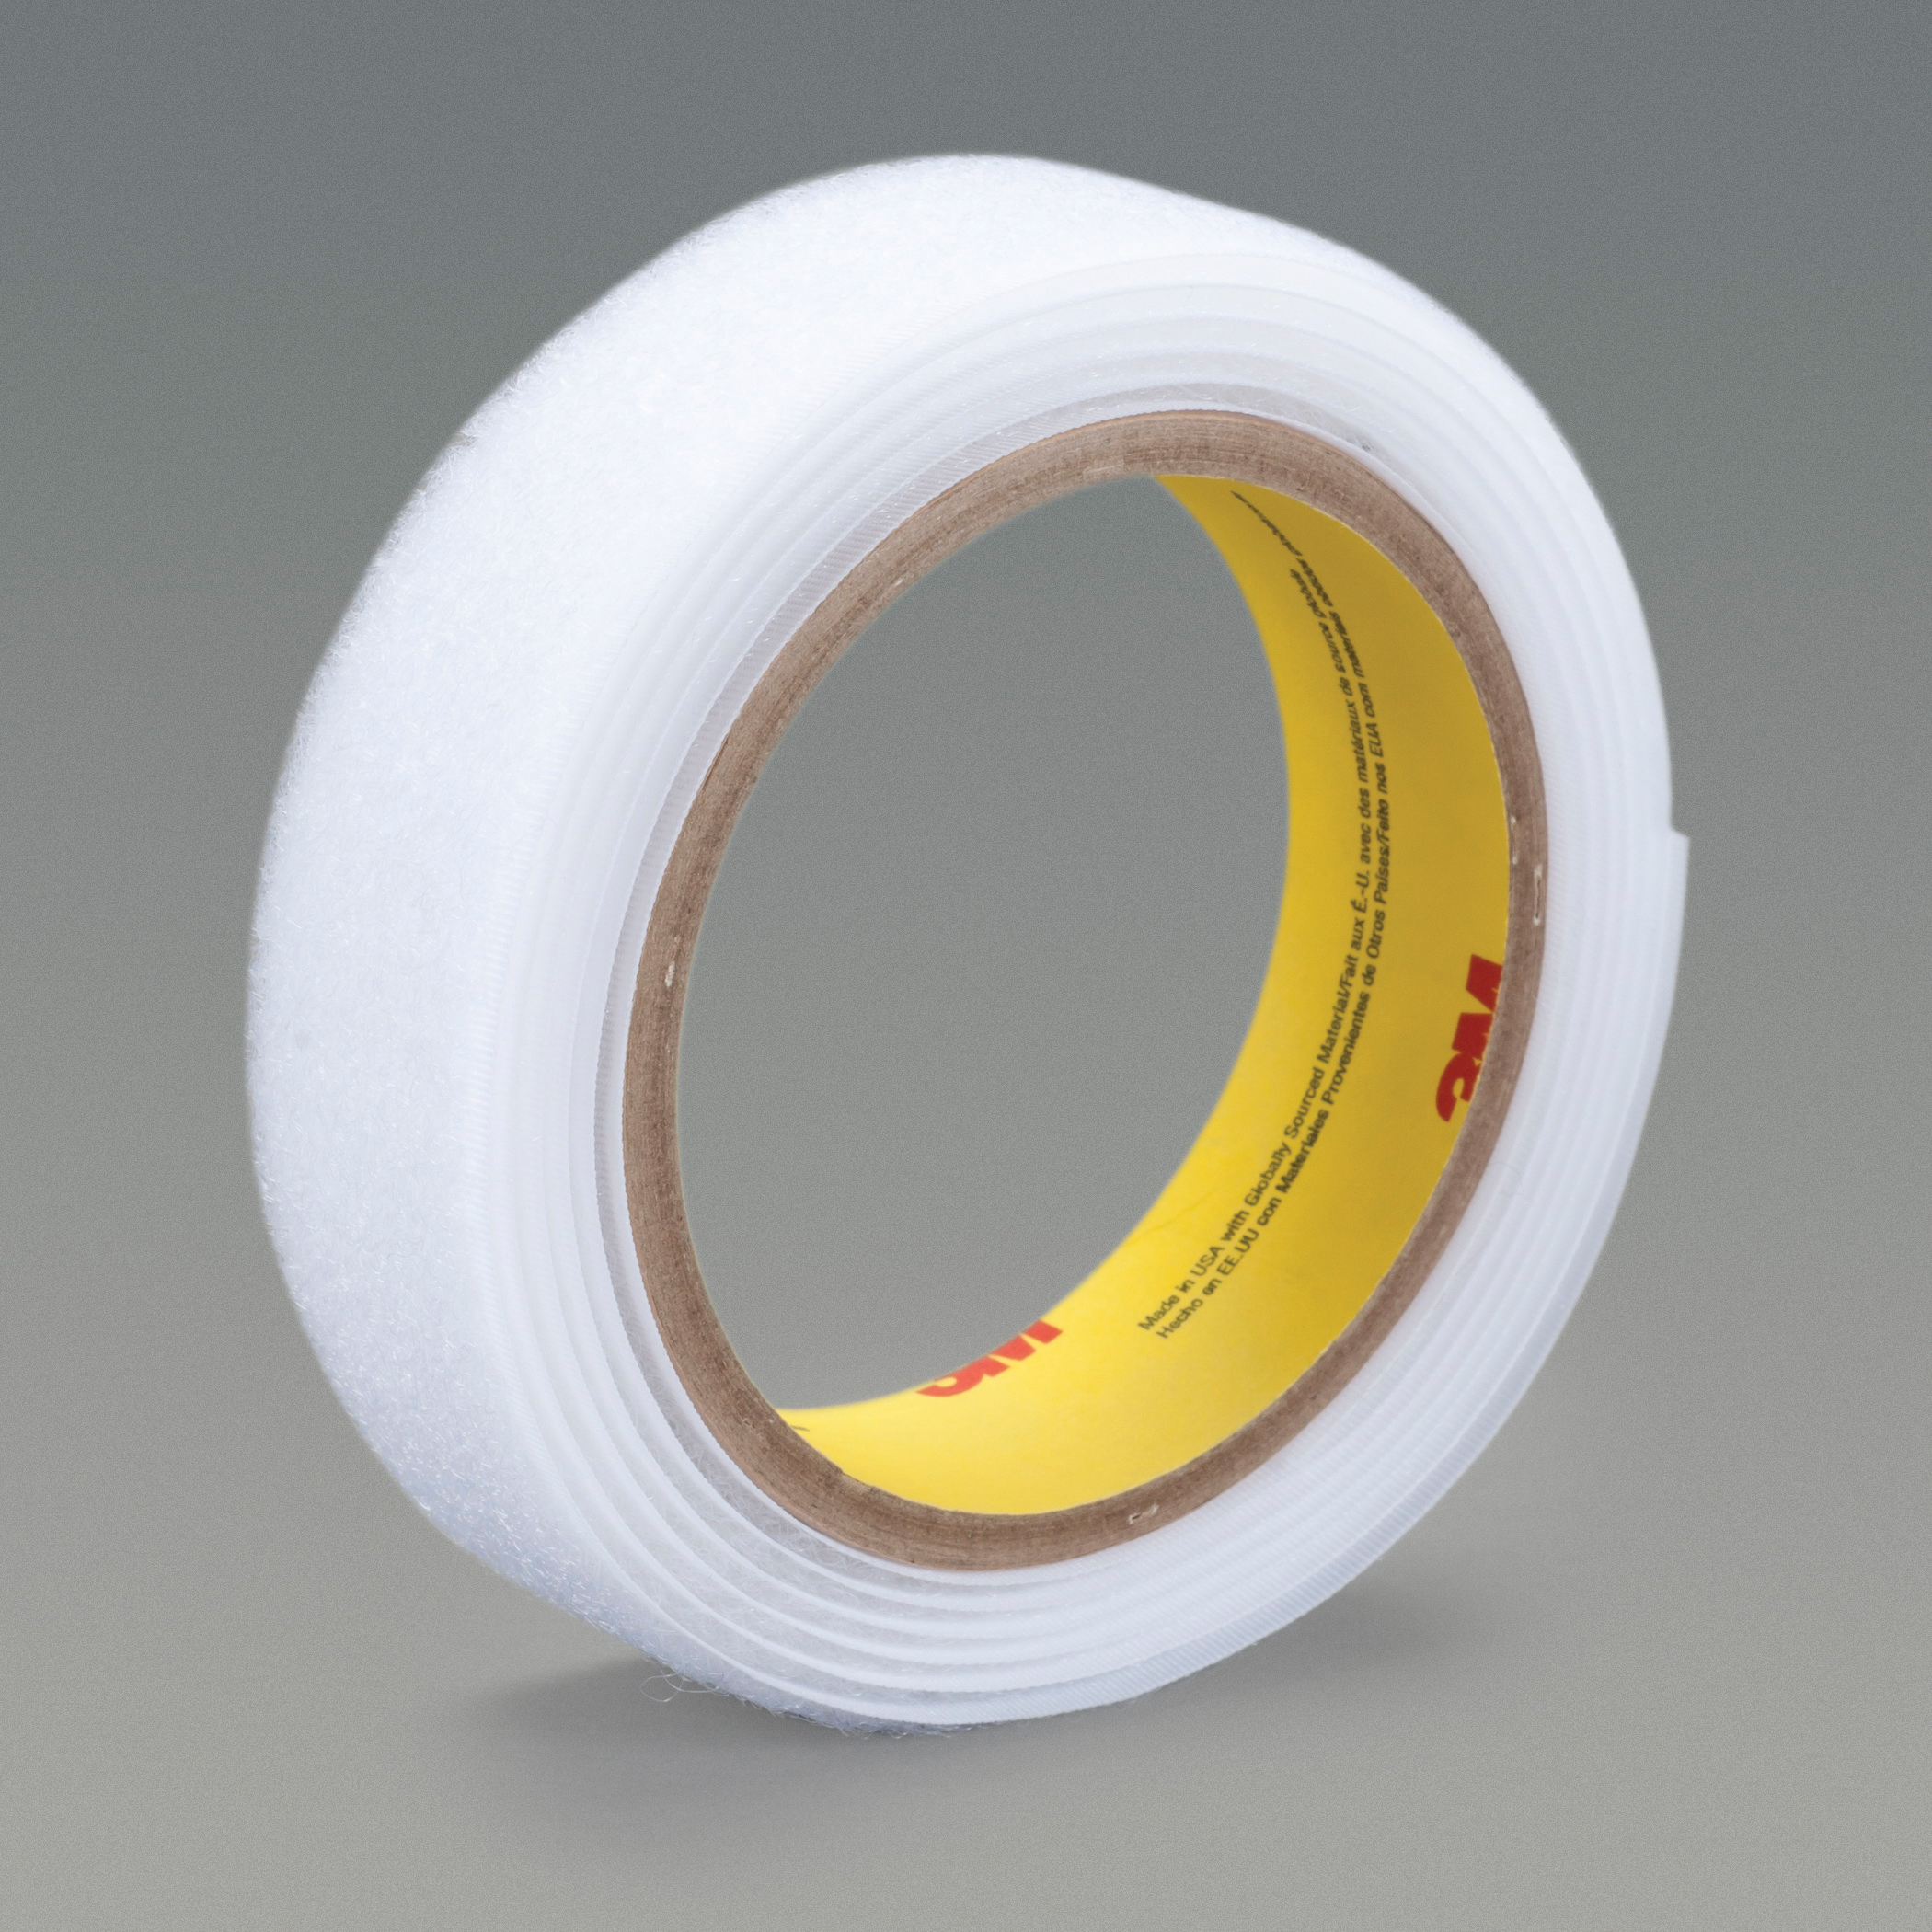 3M™ 021200-62548 General Purpose Non-Adhesive Reclosable Hook Fastener Tape, 50 yd L x 5/8 in W, 0.15 in THK Engaged, Woven Nylon Backing, White